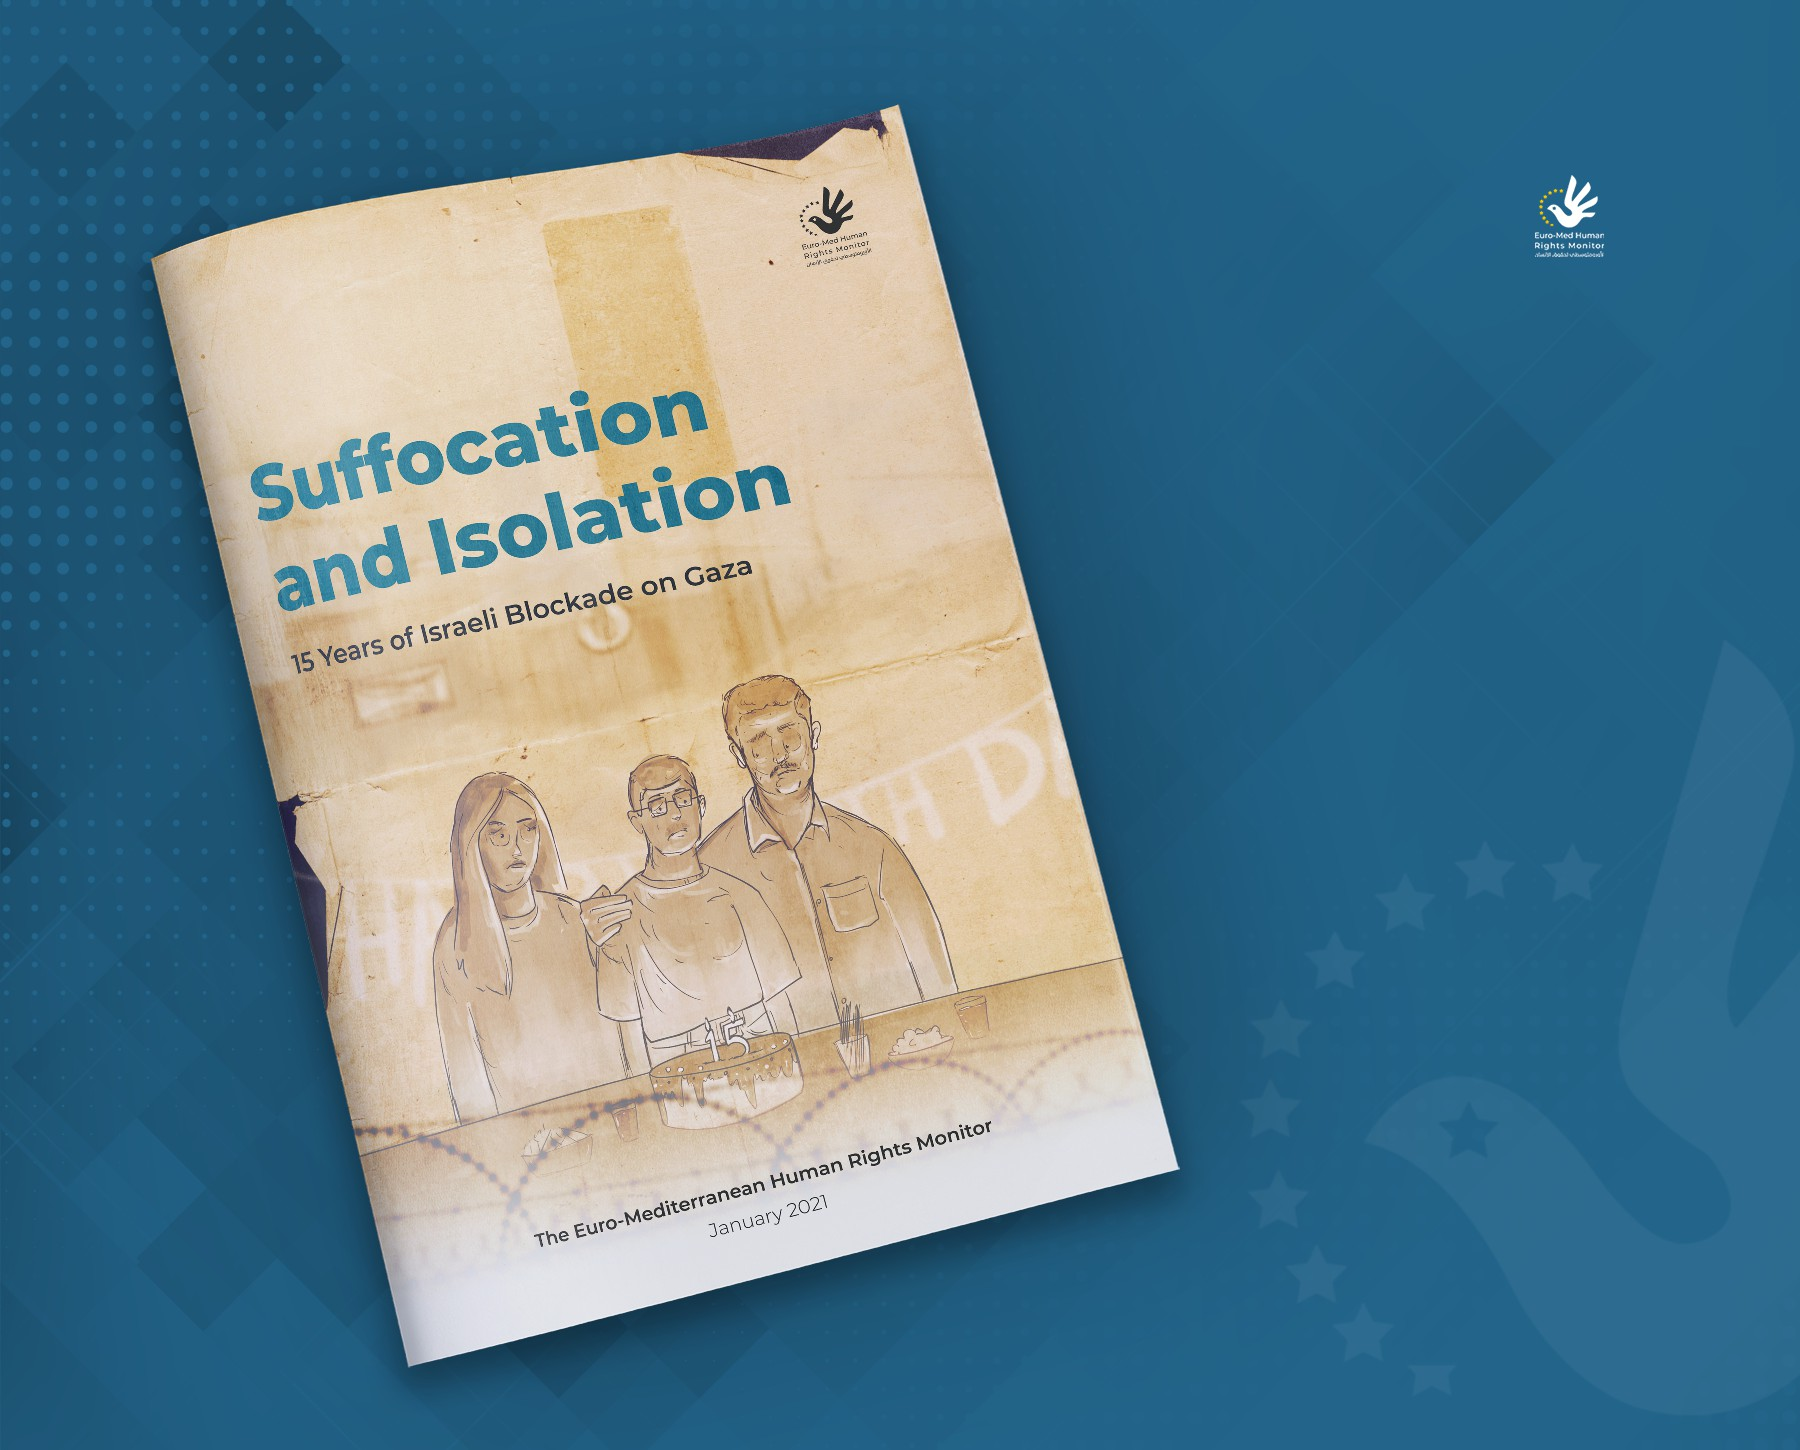 Suffocation and Isolation..15 Years of Israeli Blockade on Gaza